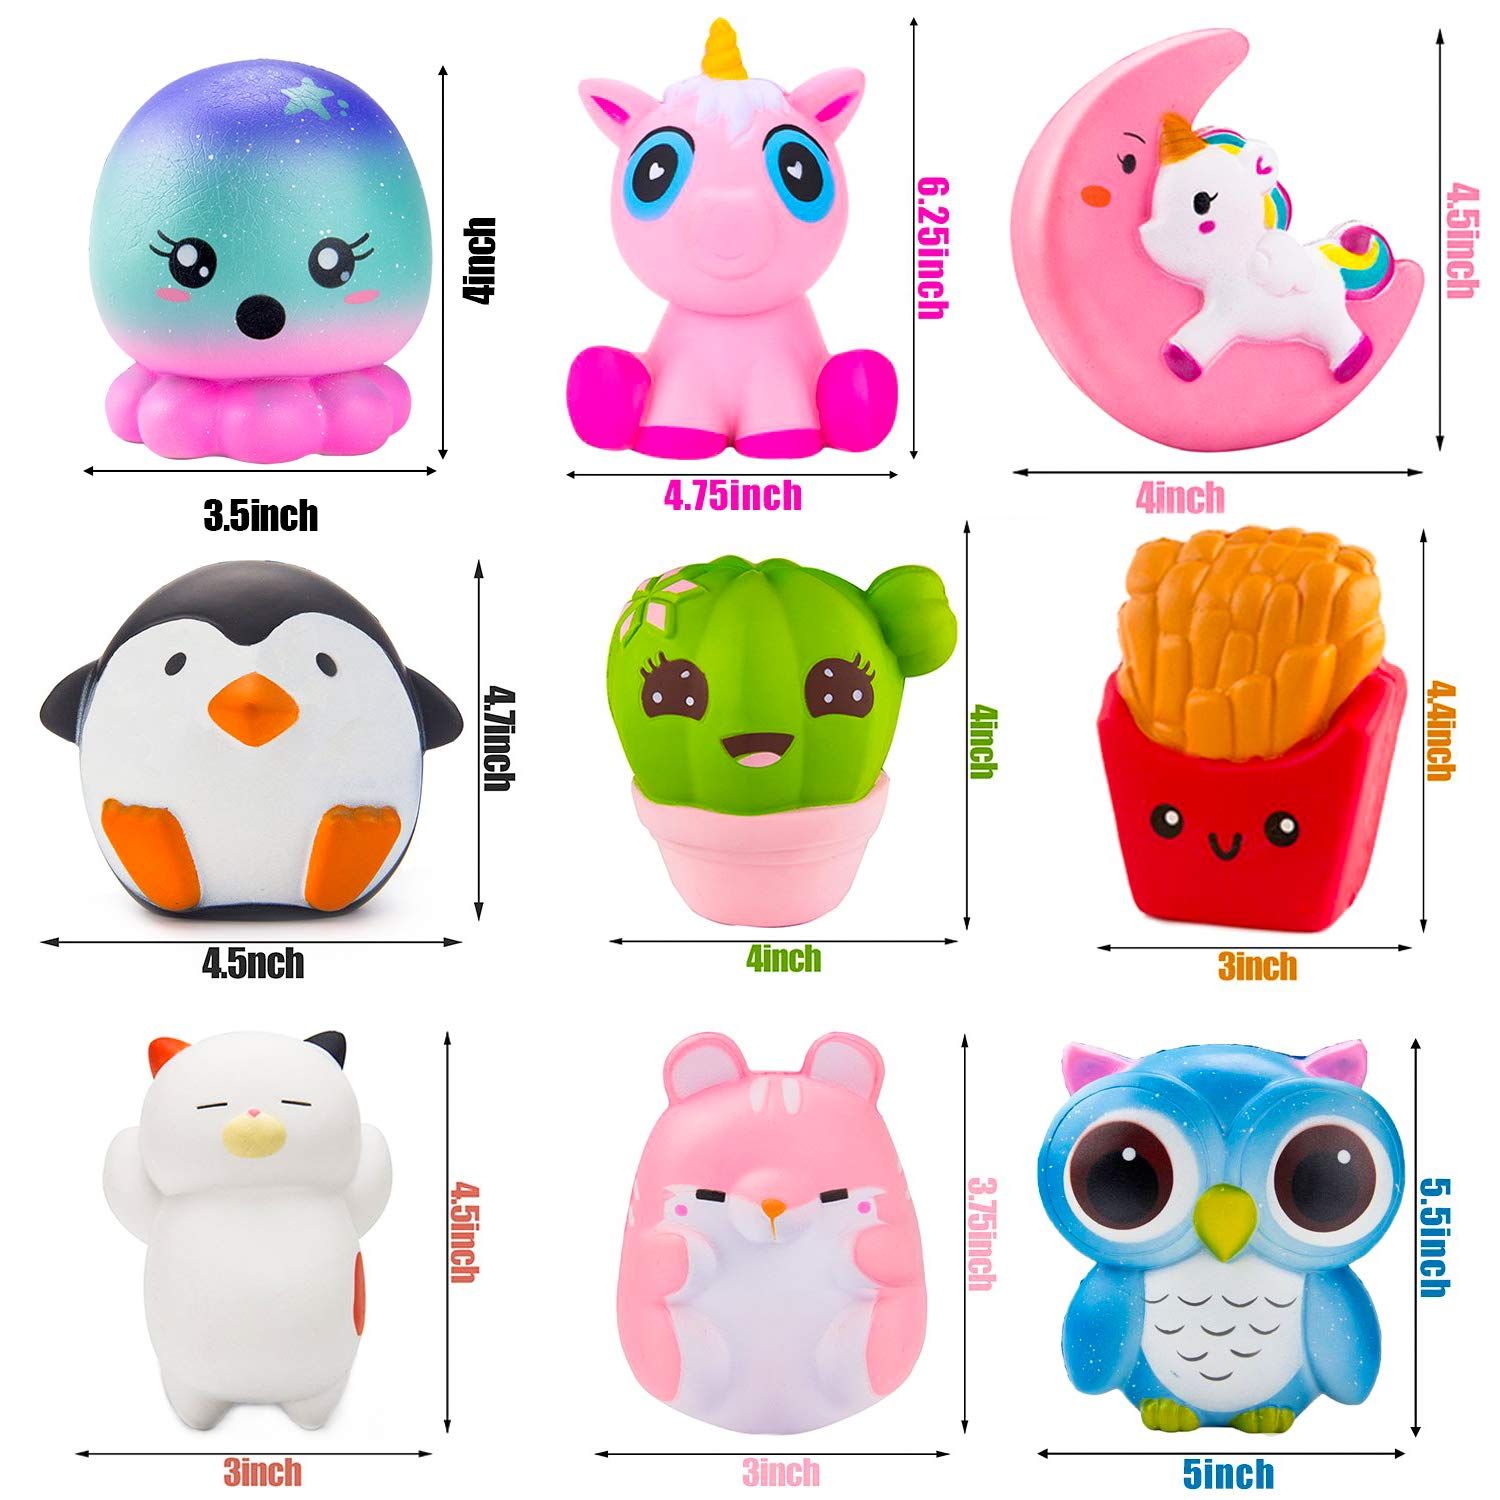 BeYumi Slow Rising Toy, Unicorn, Panda, Deer, Cat Squishy Toy, Kawaii Jumbo 10 Pcs Cream Scented Simulation Cute Animal & Food Squeeze Toys for Collection Gift, Decorative props Large or Stress Relief by BeYumi (Image #6)